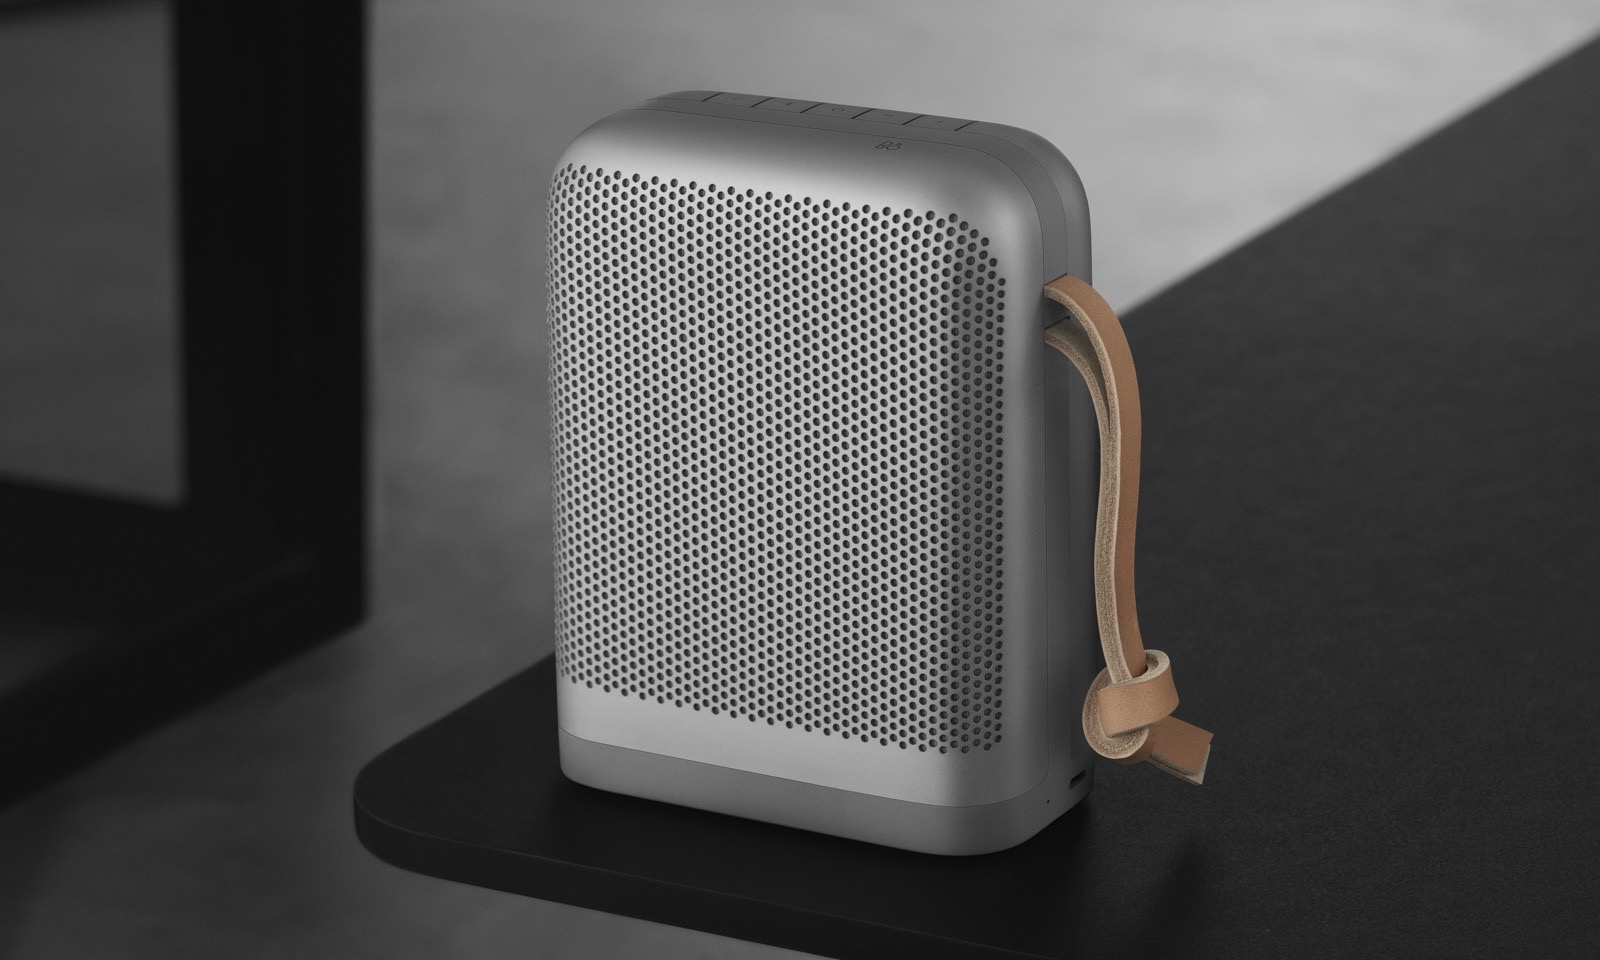 b o 39 s beoplay p6 speaker blasts your summer playlists in all directions aivanet. Black Bedroom Furniture Sets. Home Design Ideas